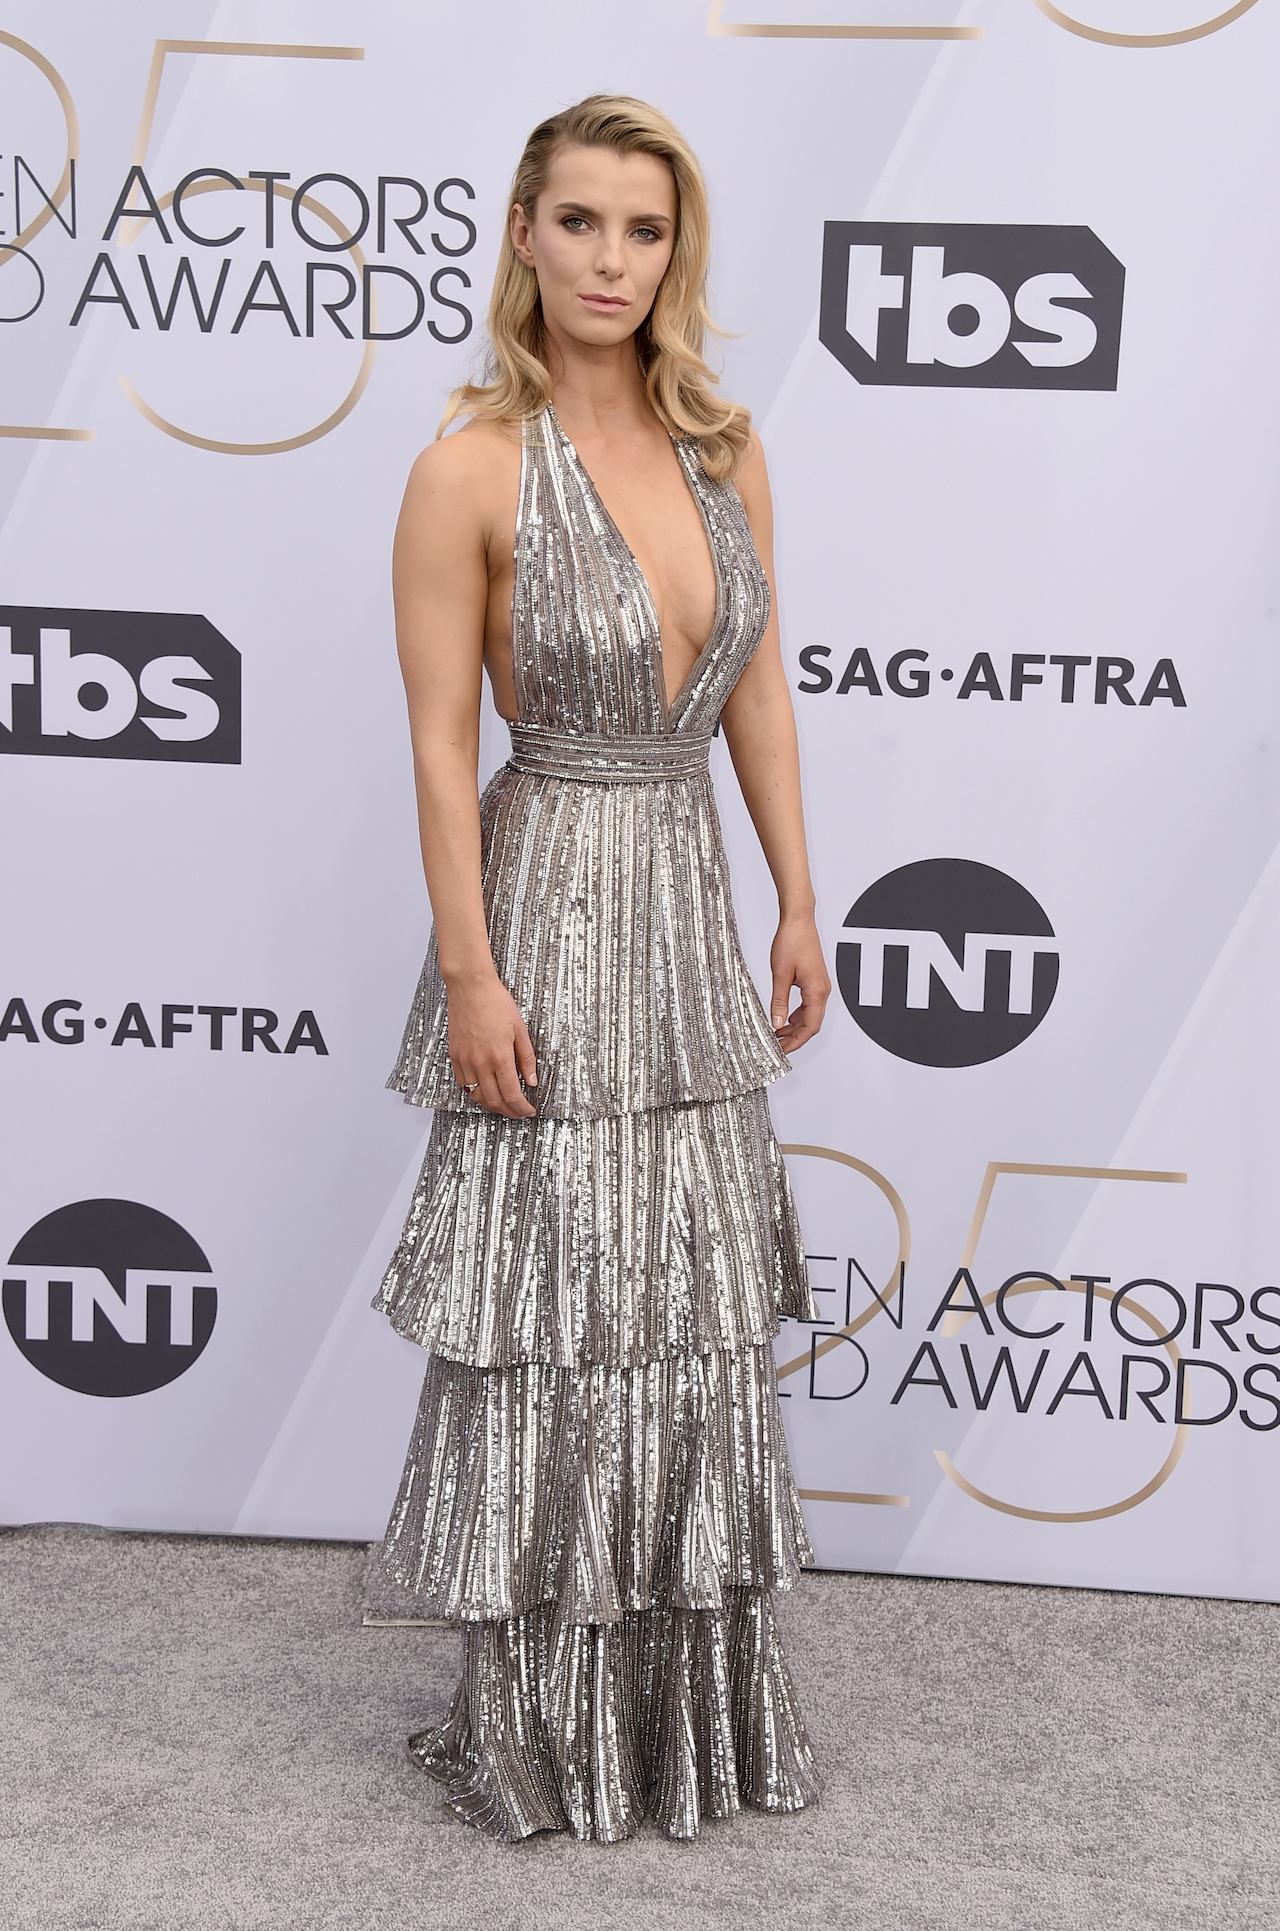 "<div class=""meta image-caption""><div class=""origin-logo origin-image ap""><span>AP</span></div><span class=""caption-text"">Betty Gilpin arrives at the 25th annual Screen Actors Guild Awards at the Shrine Auditorium & Expo Hall on Sunday, Jan. 27, 2019, in Los Angeles. (Jordan Strauss/Invision/AP)</span></div>"